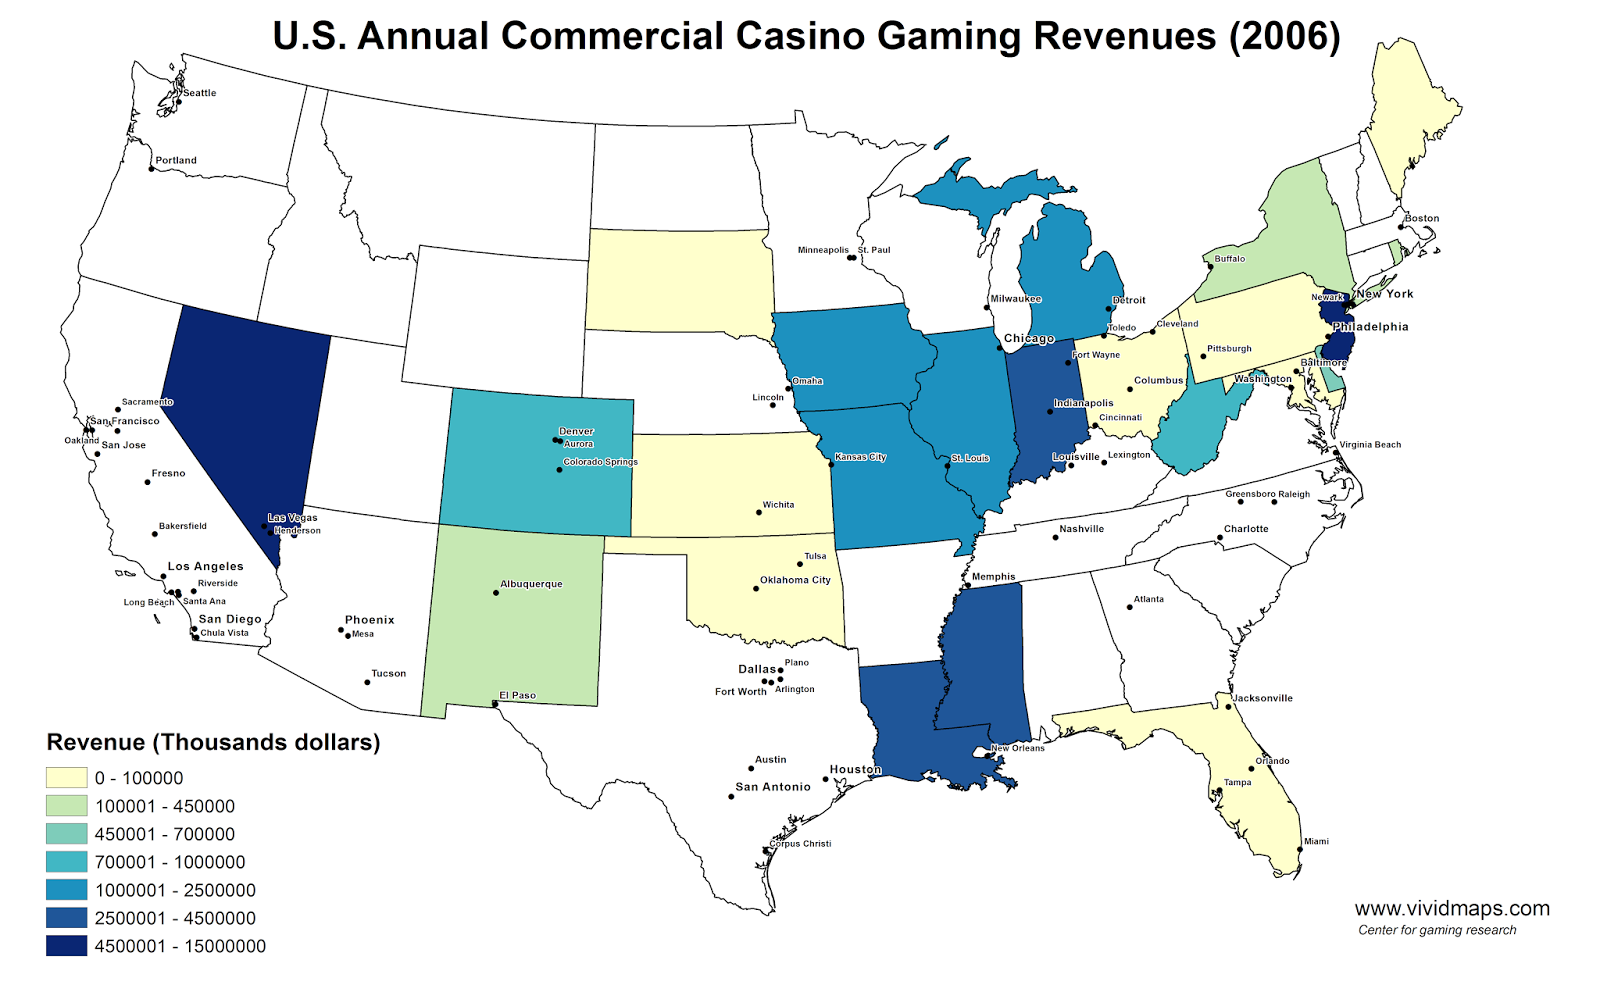 U.S. Annual Commercial Casino Gaming Revenues (2006)